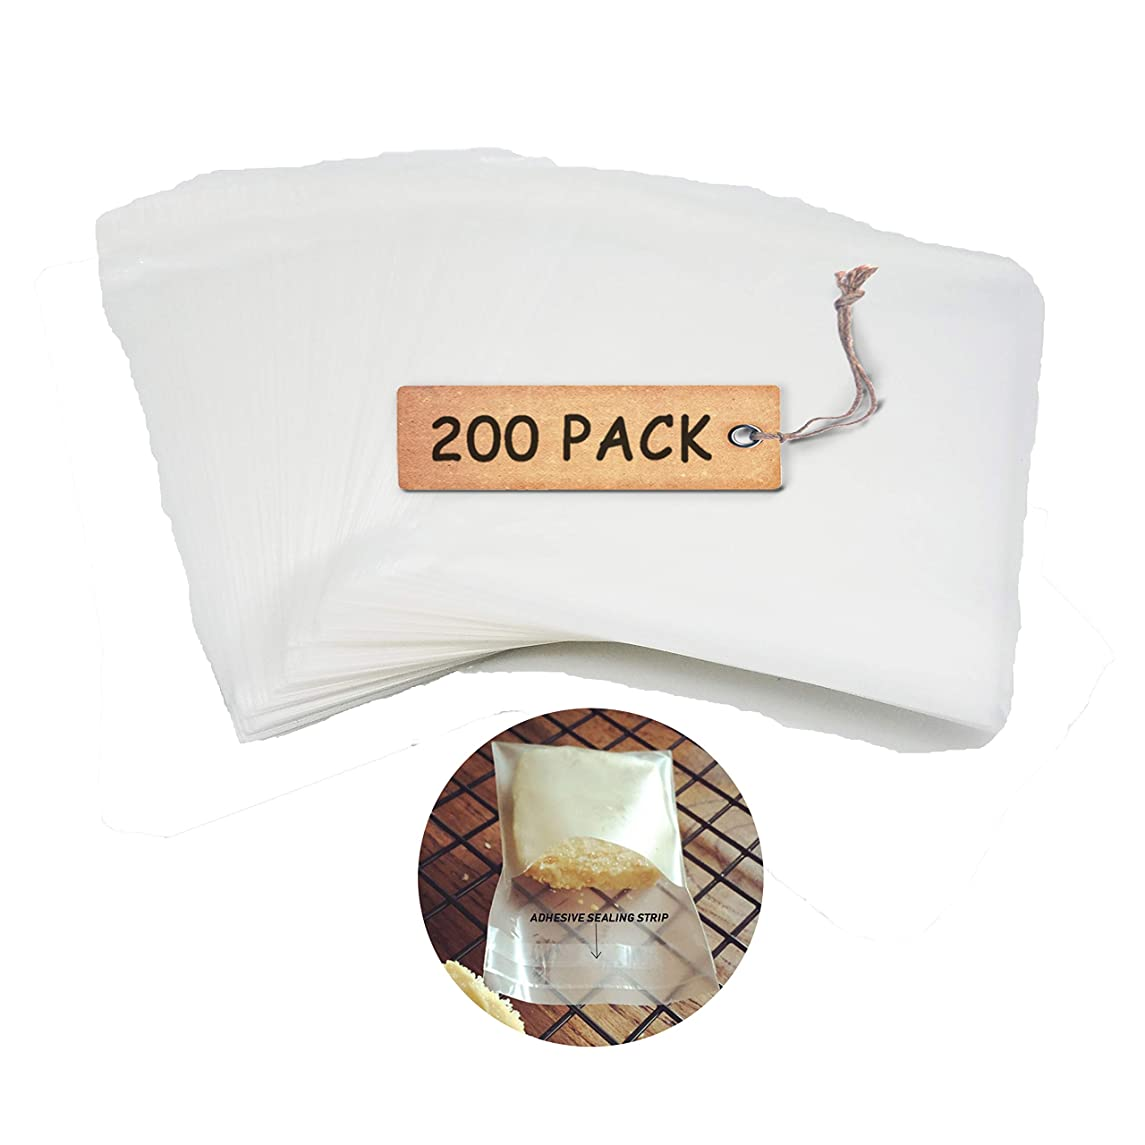 SCHOLMART 200 pcs Adhesive Treat Bags Clear Cello Cellophane Wrap Self Sealing OPP Plastic Packaging Bags for Bakery Cookies Candy Bread Chocolate Jelly (2 x 2 inch)